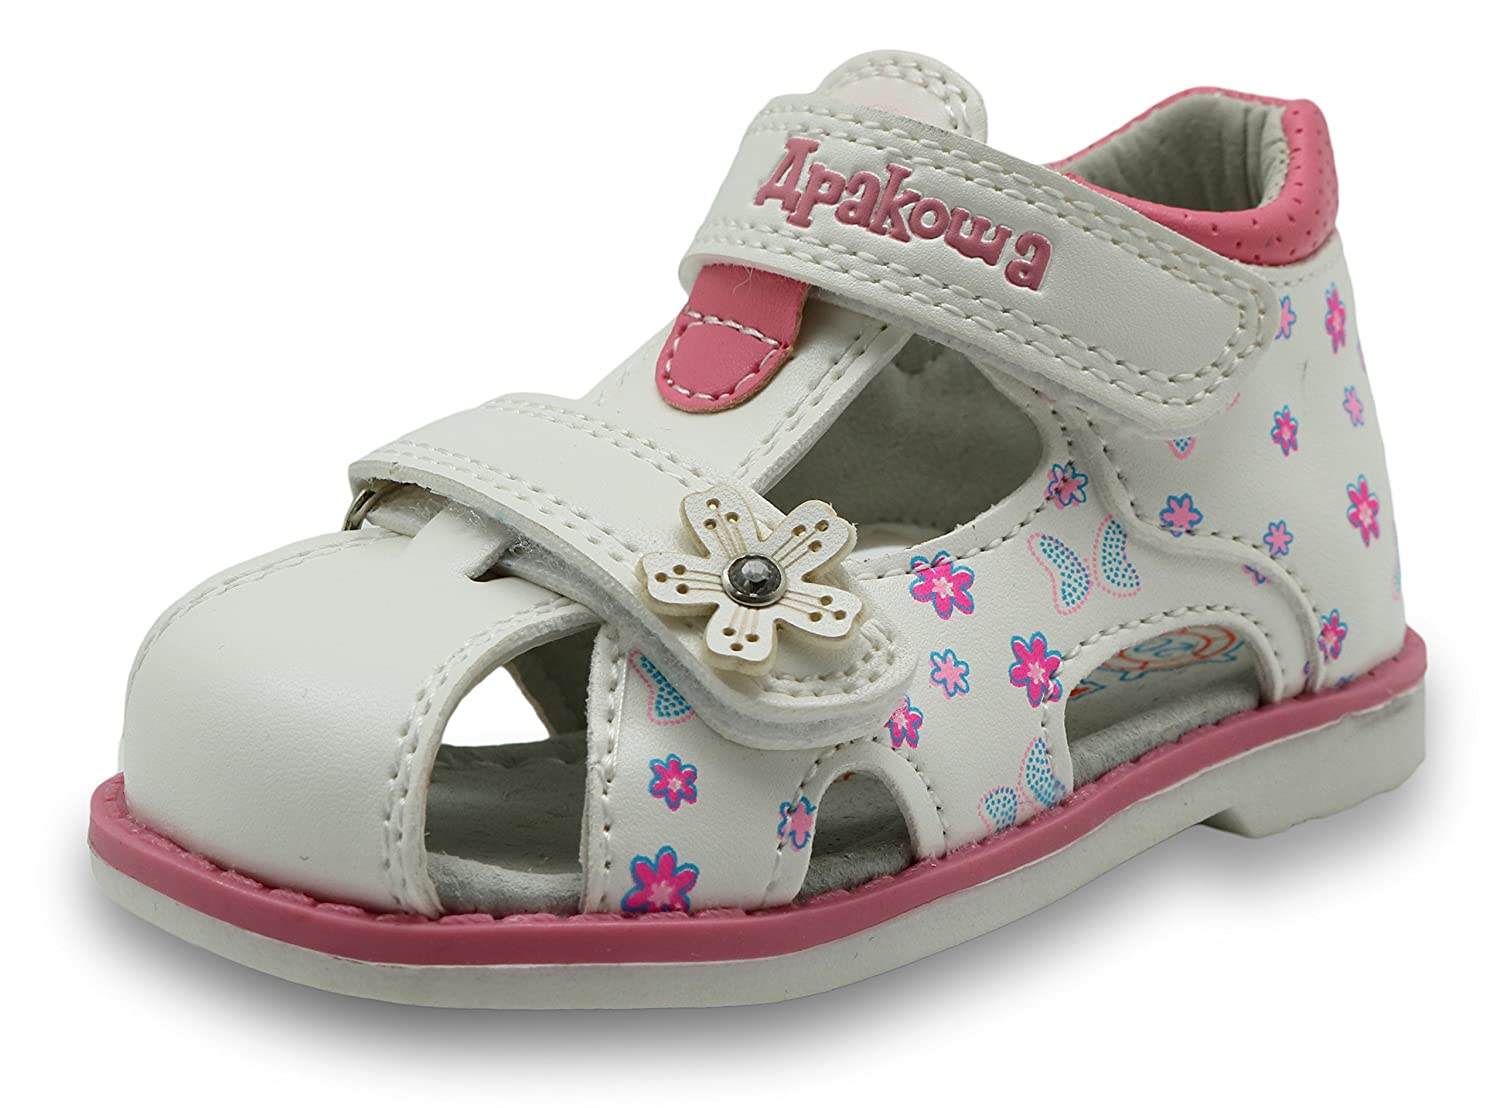 Toddler Apakowa Boys and Girls Double Adjustable Strap Closed-Toe Sandals